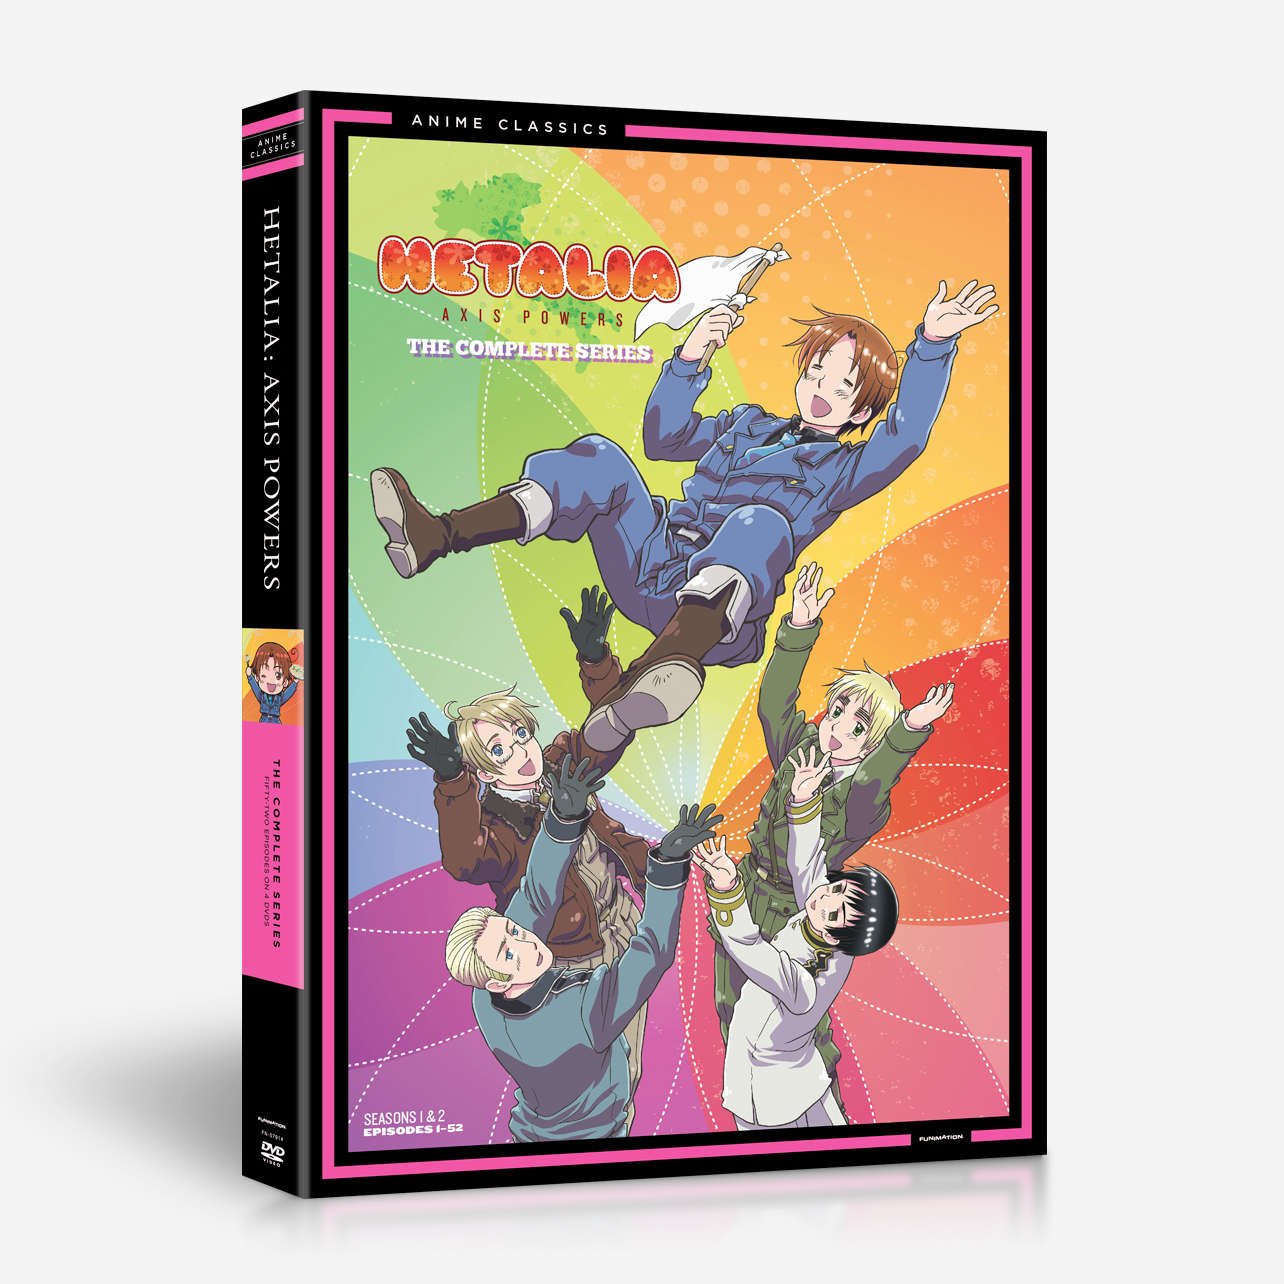 Axis Powers: The Complete Series - Anime Classics home-video